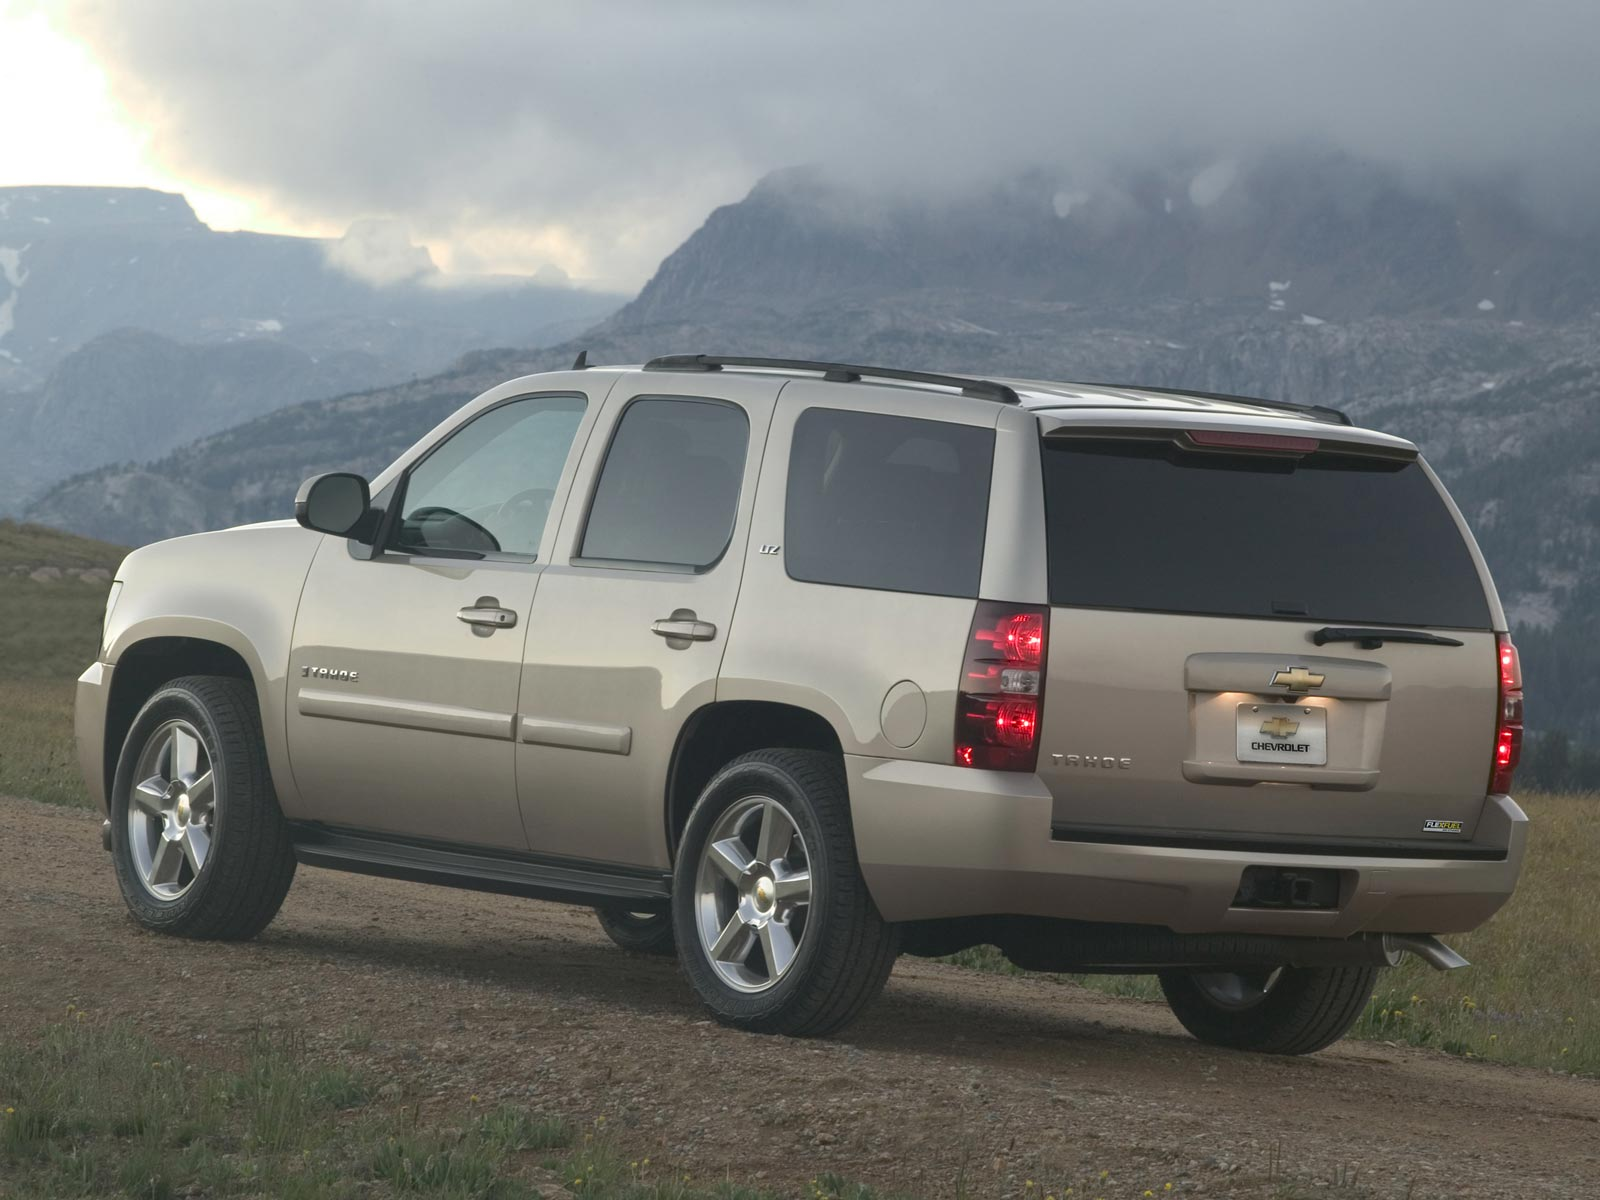 2019 Chevrolet Avalanche photo - 6